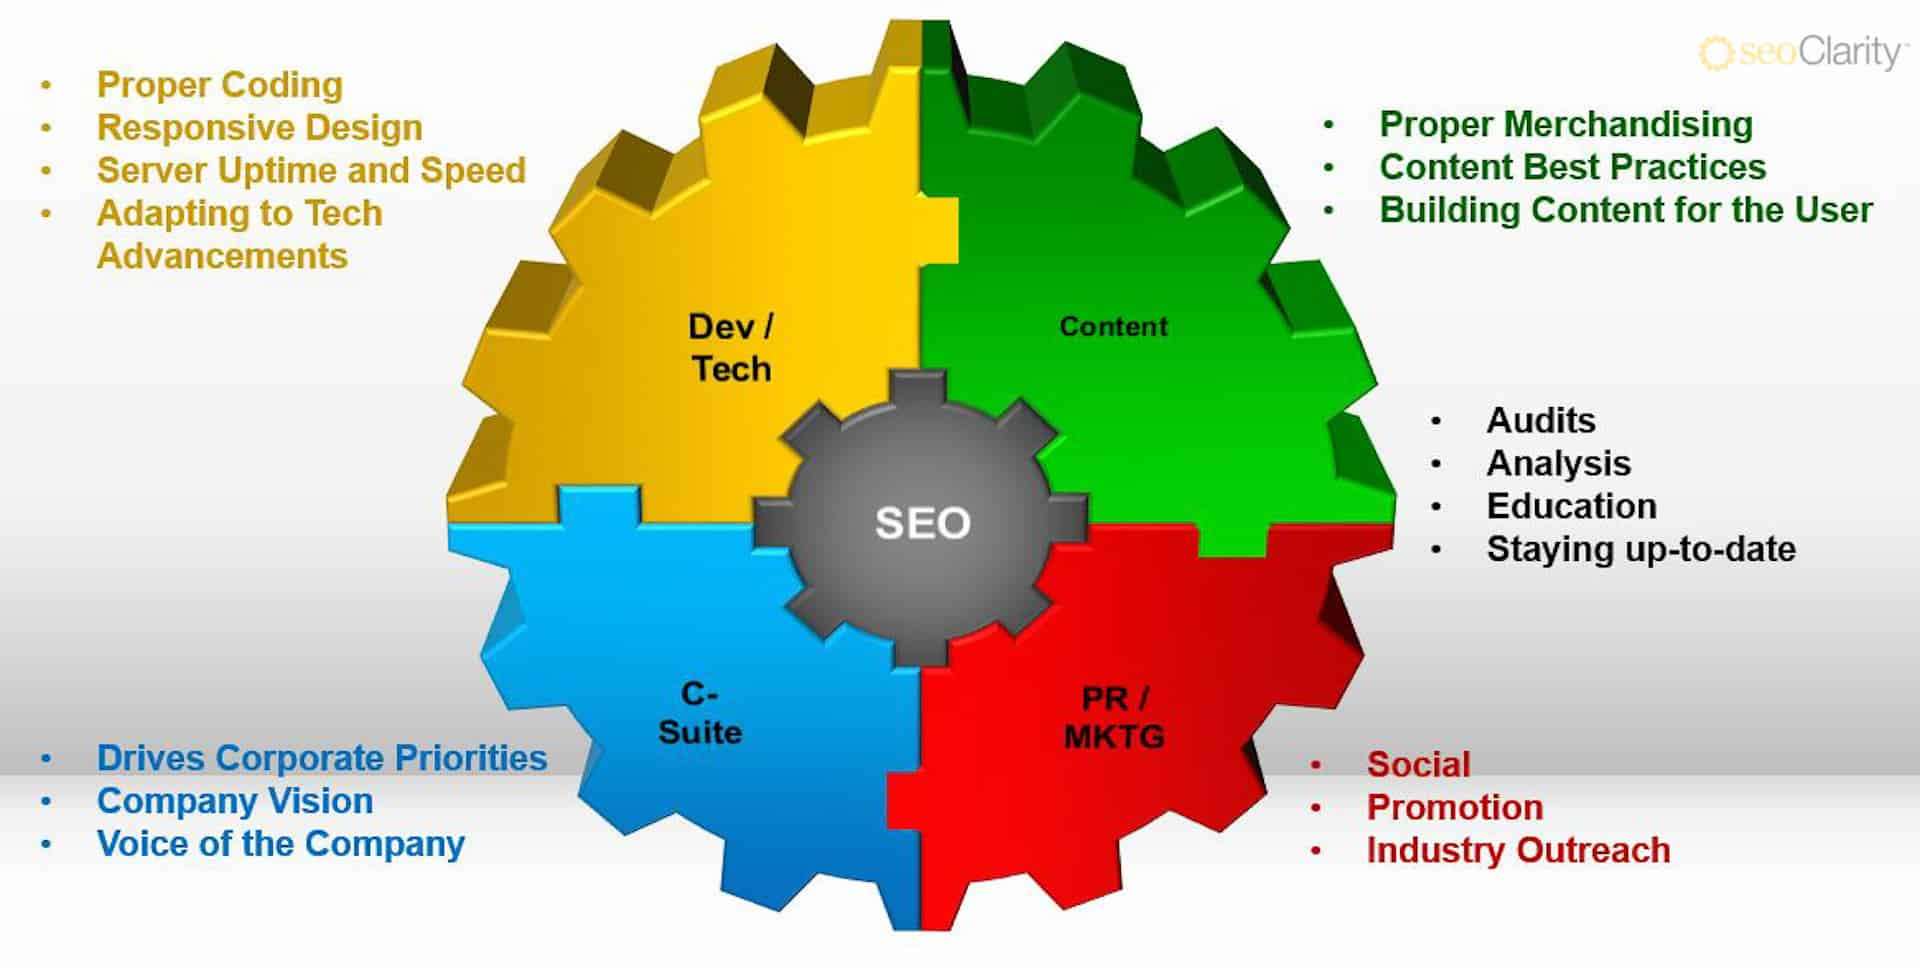 Having-an-Expert-SEO-Team-Isn't-Enough